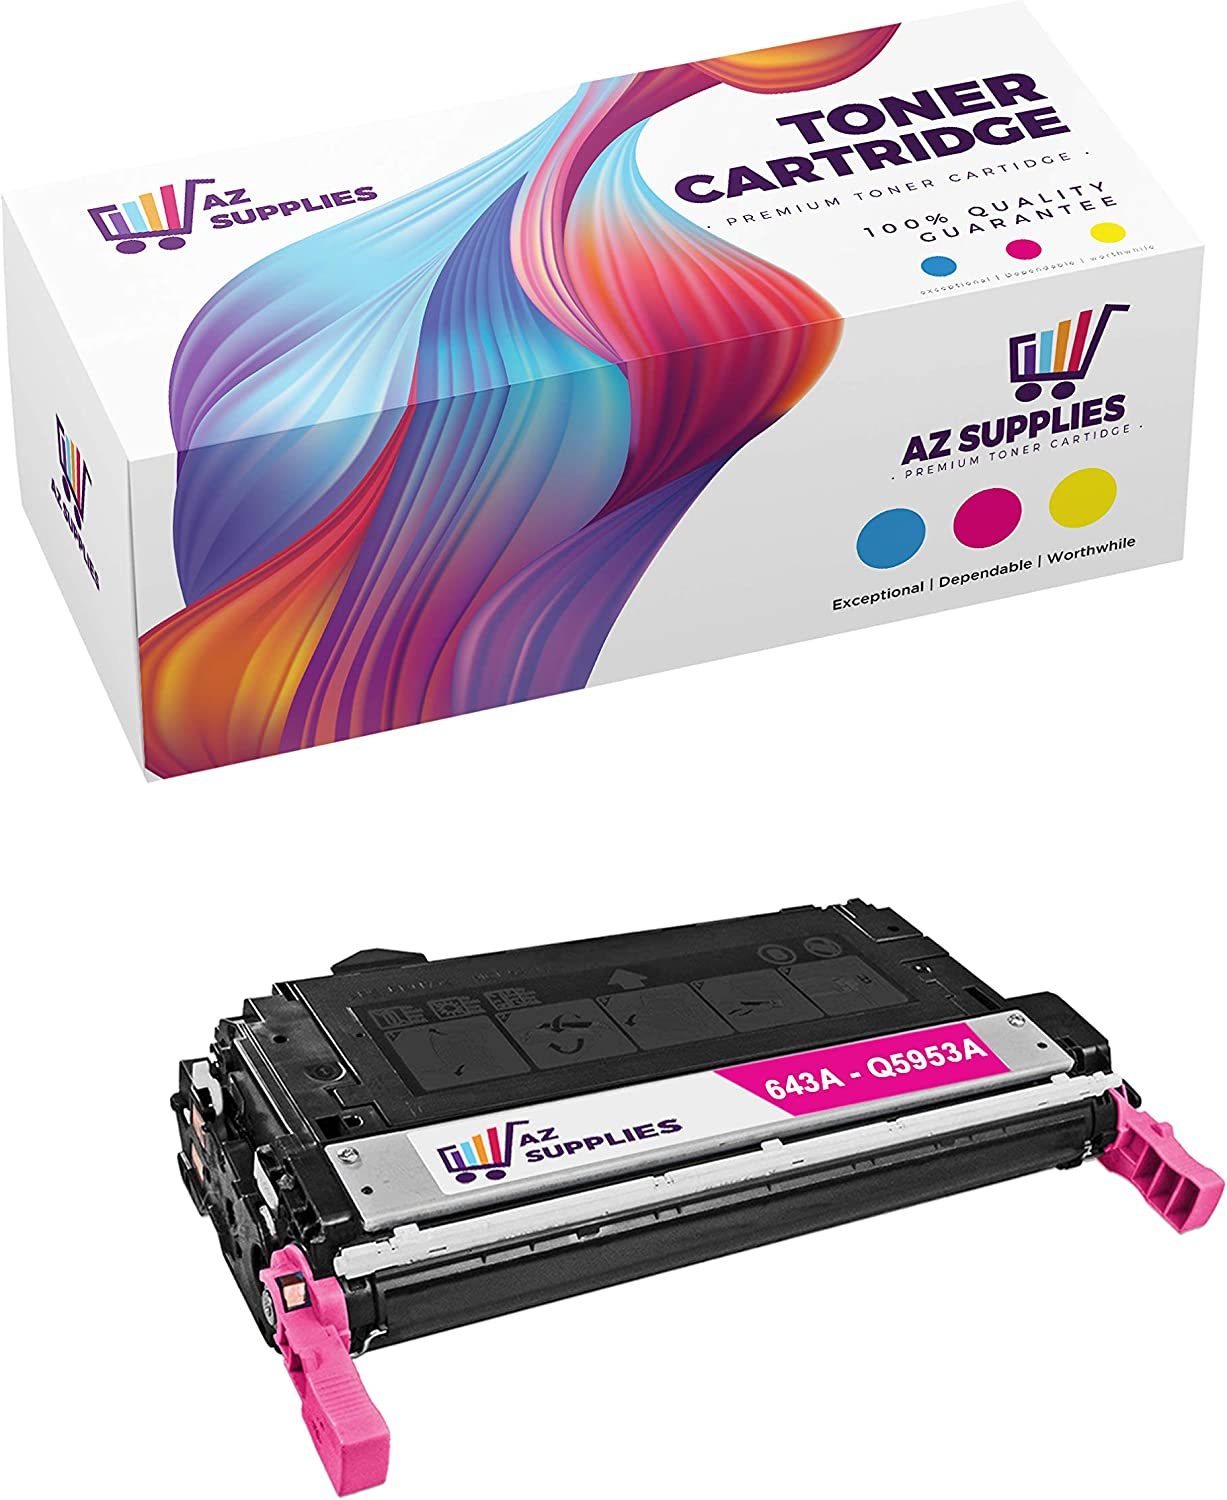 AZ Supplies Compatible Toner Cartridge Replacement for HP 643A Q5953A Color Laserjet 4700 4700DN 4700DTN 4700N 4700PH+ (Magenta - 1 Pack)